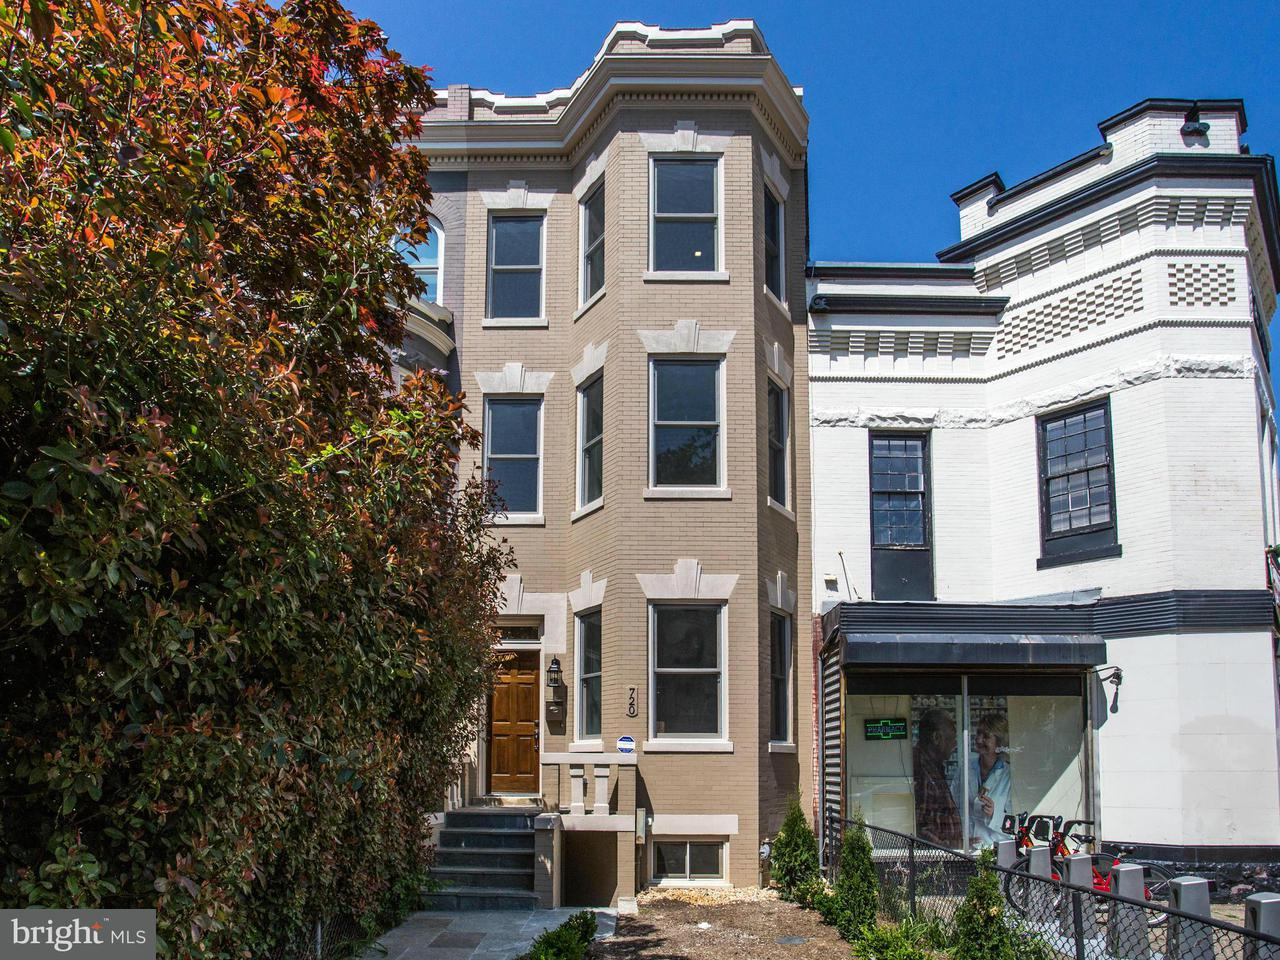 Townhouse for Sale at 720 CAPITOL ST NE 720 CAPITOL ST NE Washington, District Of Columbia 20003 United States